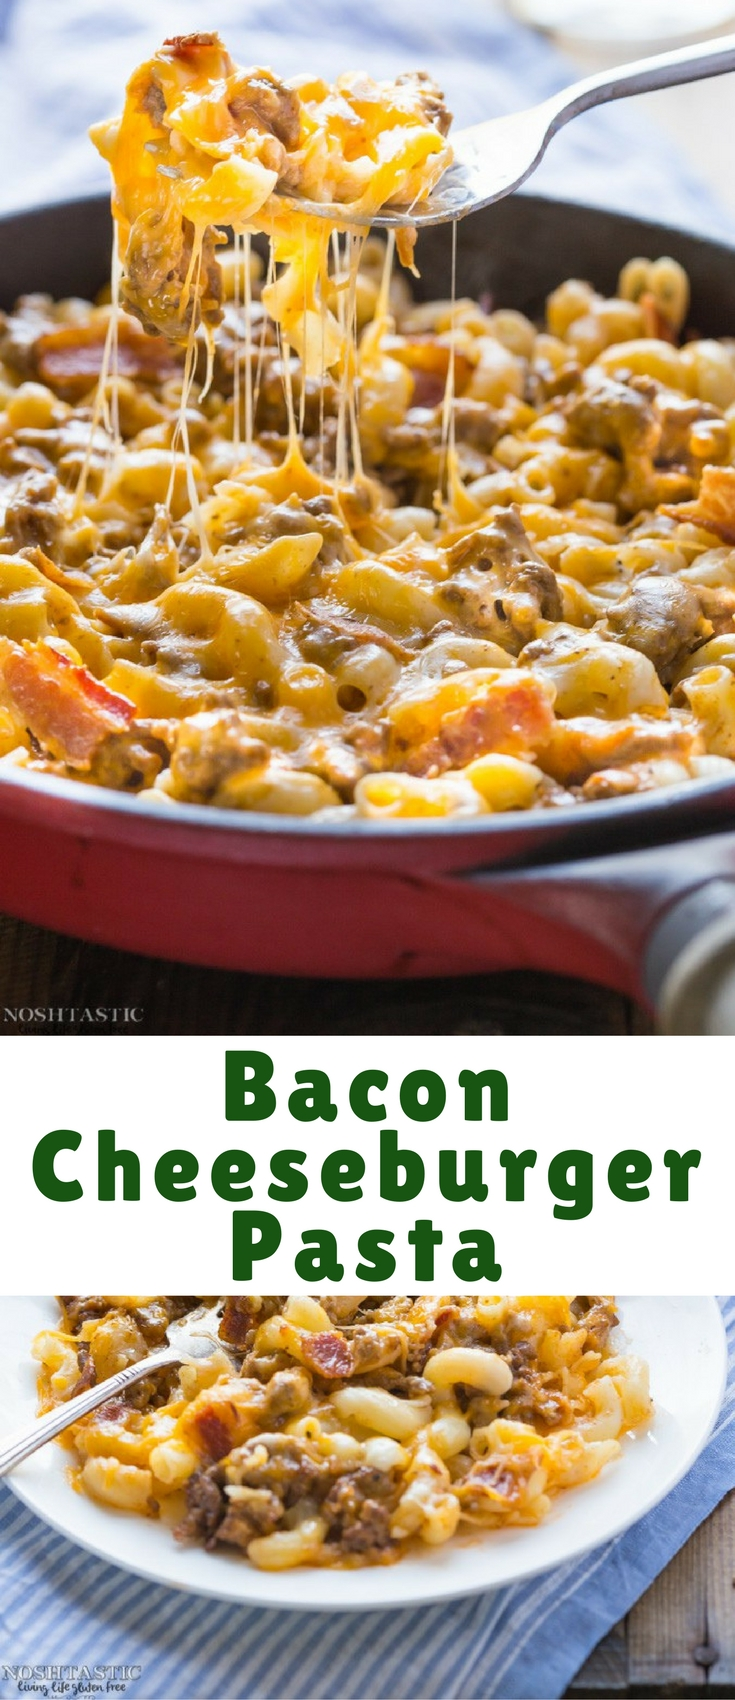 It doesn't get much better than gluten free Bacon Cheeseburger Pasta! This easy weeknight dinner cooks in less than 20 minutes.